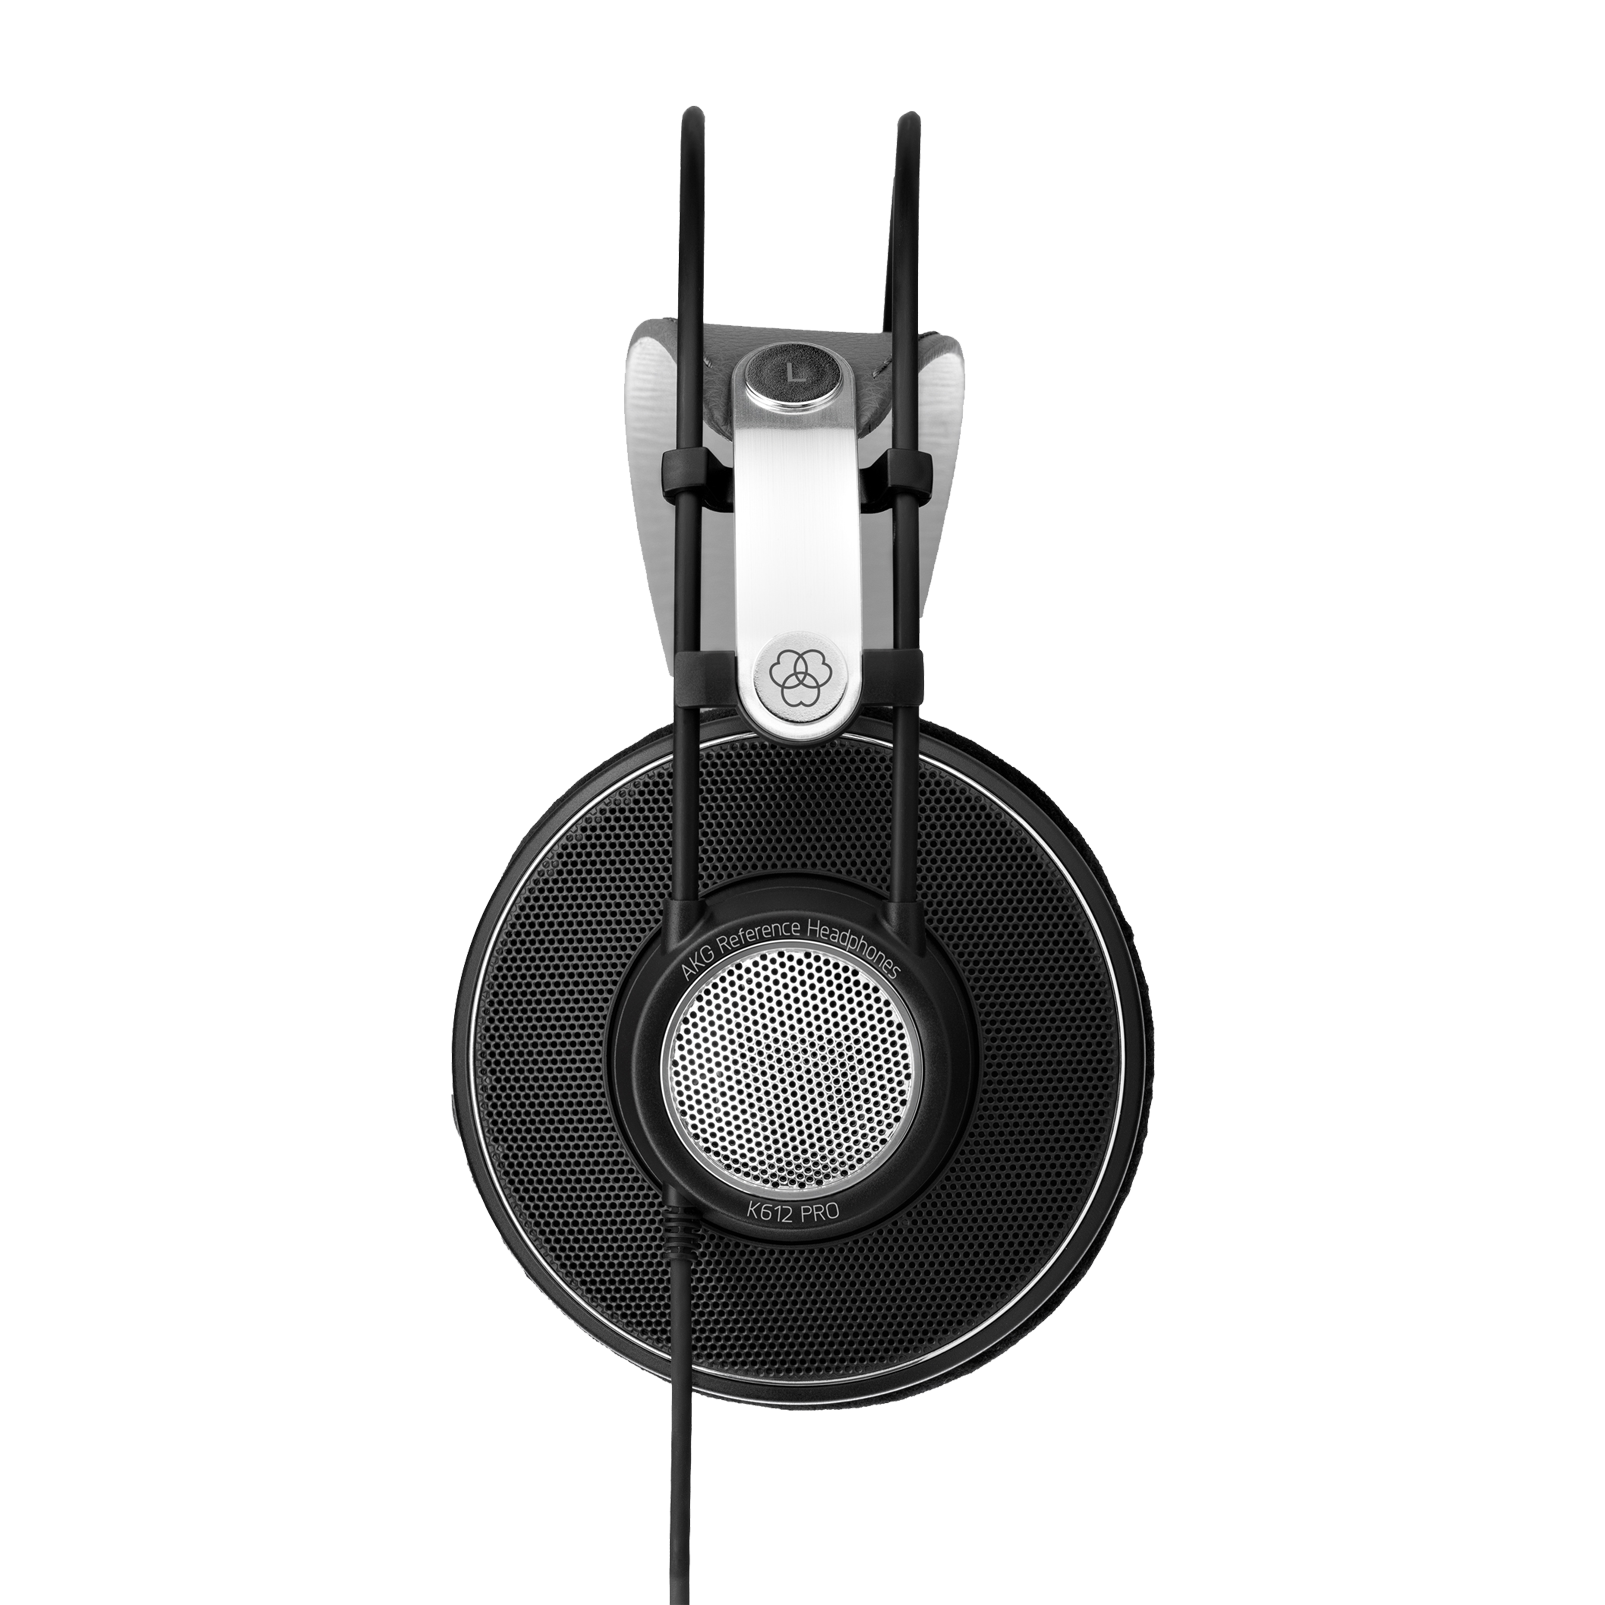 K612 PRO - Black - Reference studio headphones - Left